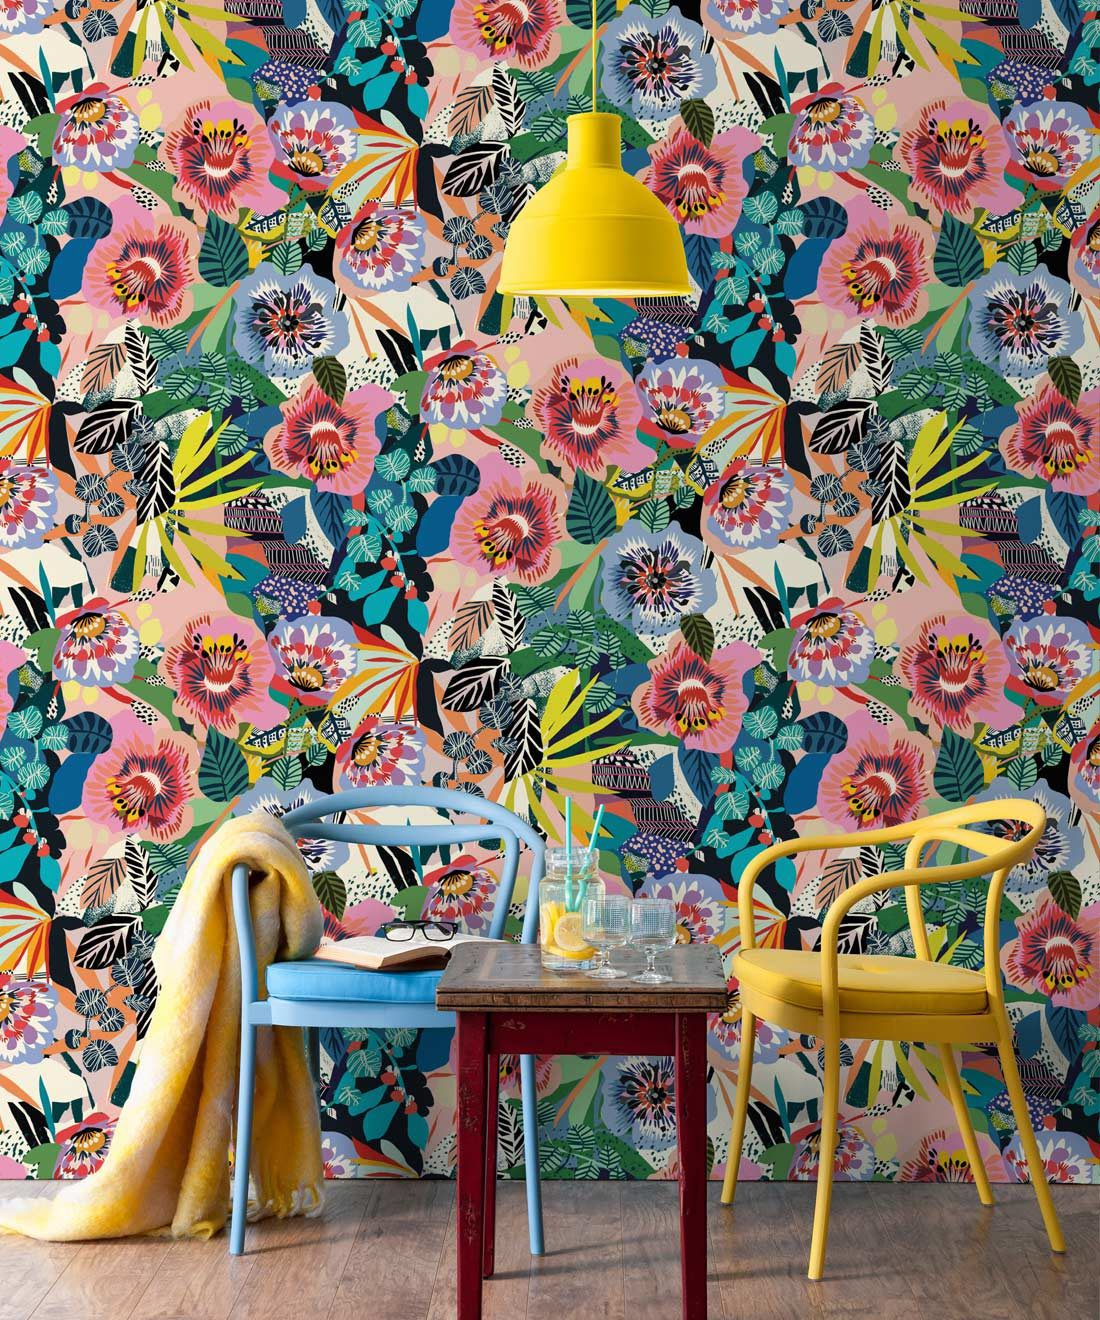 Summer Garden, Colourful Floral Wallpaper by Kitty McCall, Milton & King - Europe